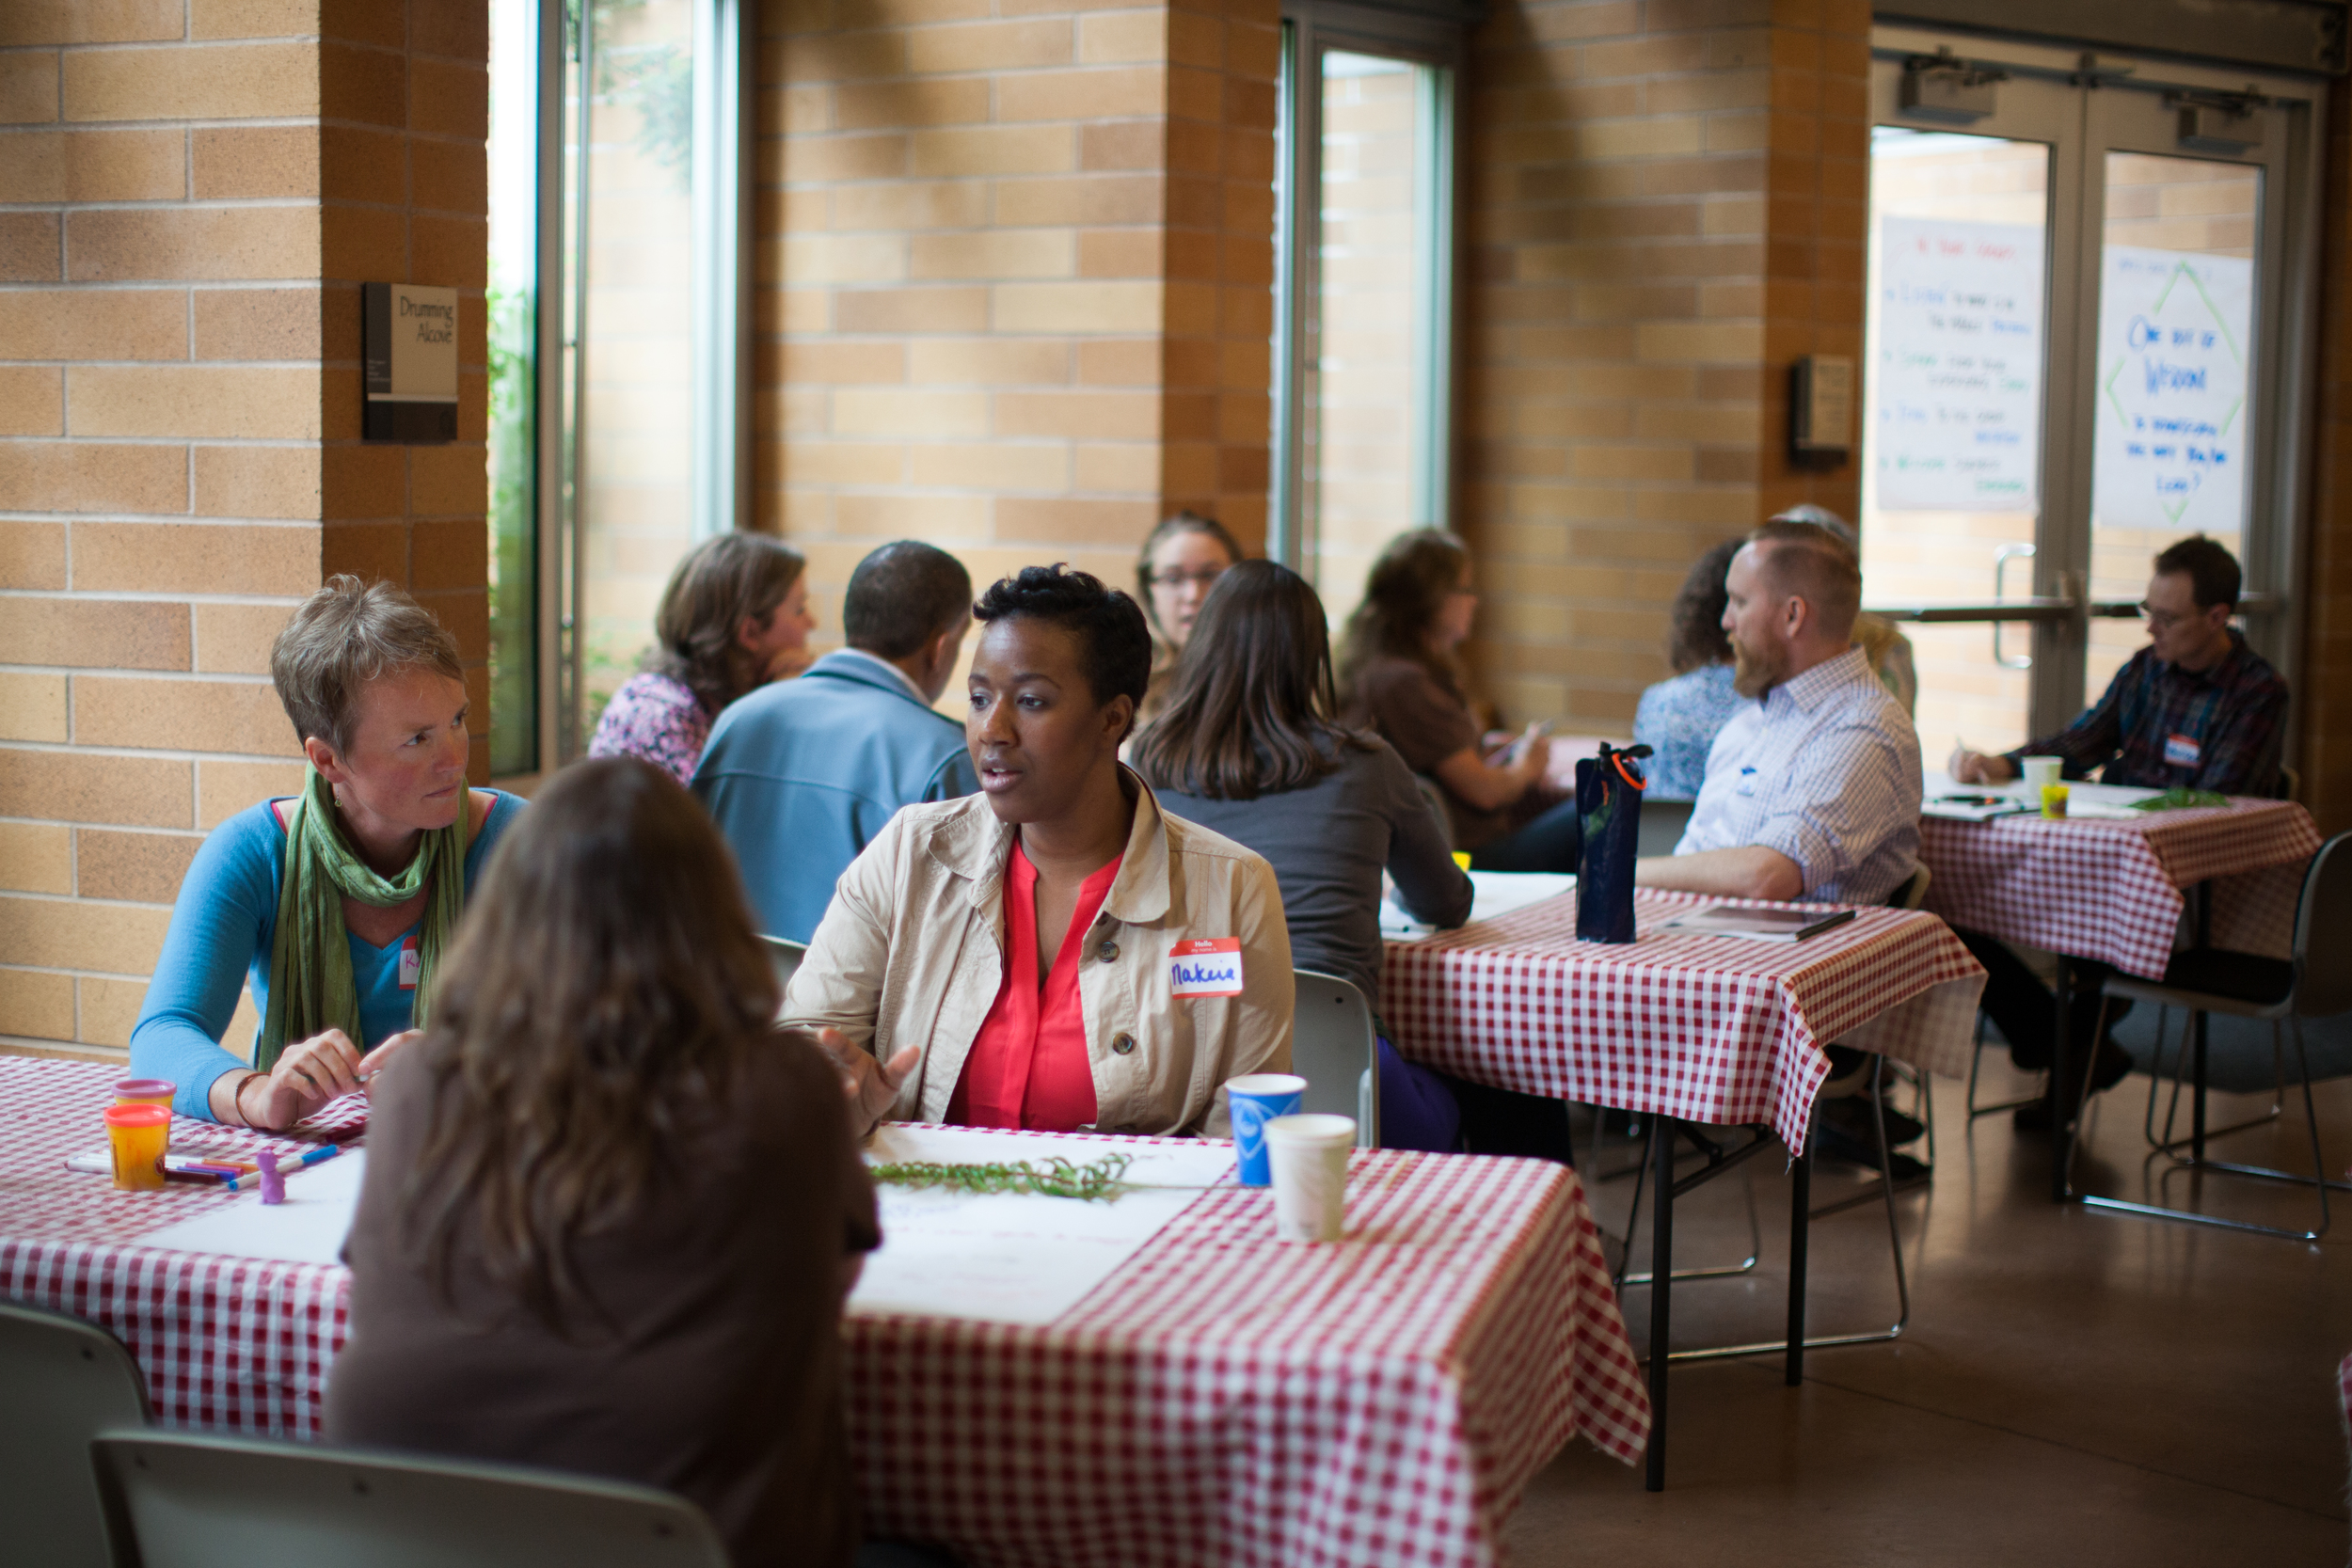 World Cafe is a core practice of Art of Hosting.